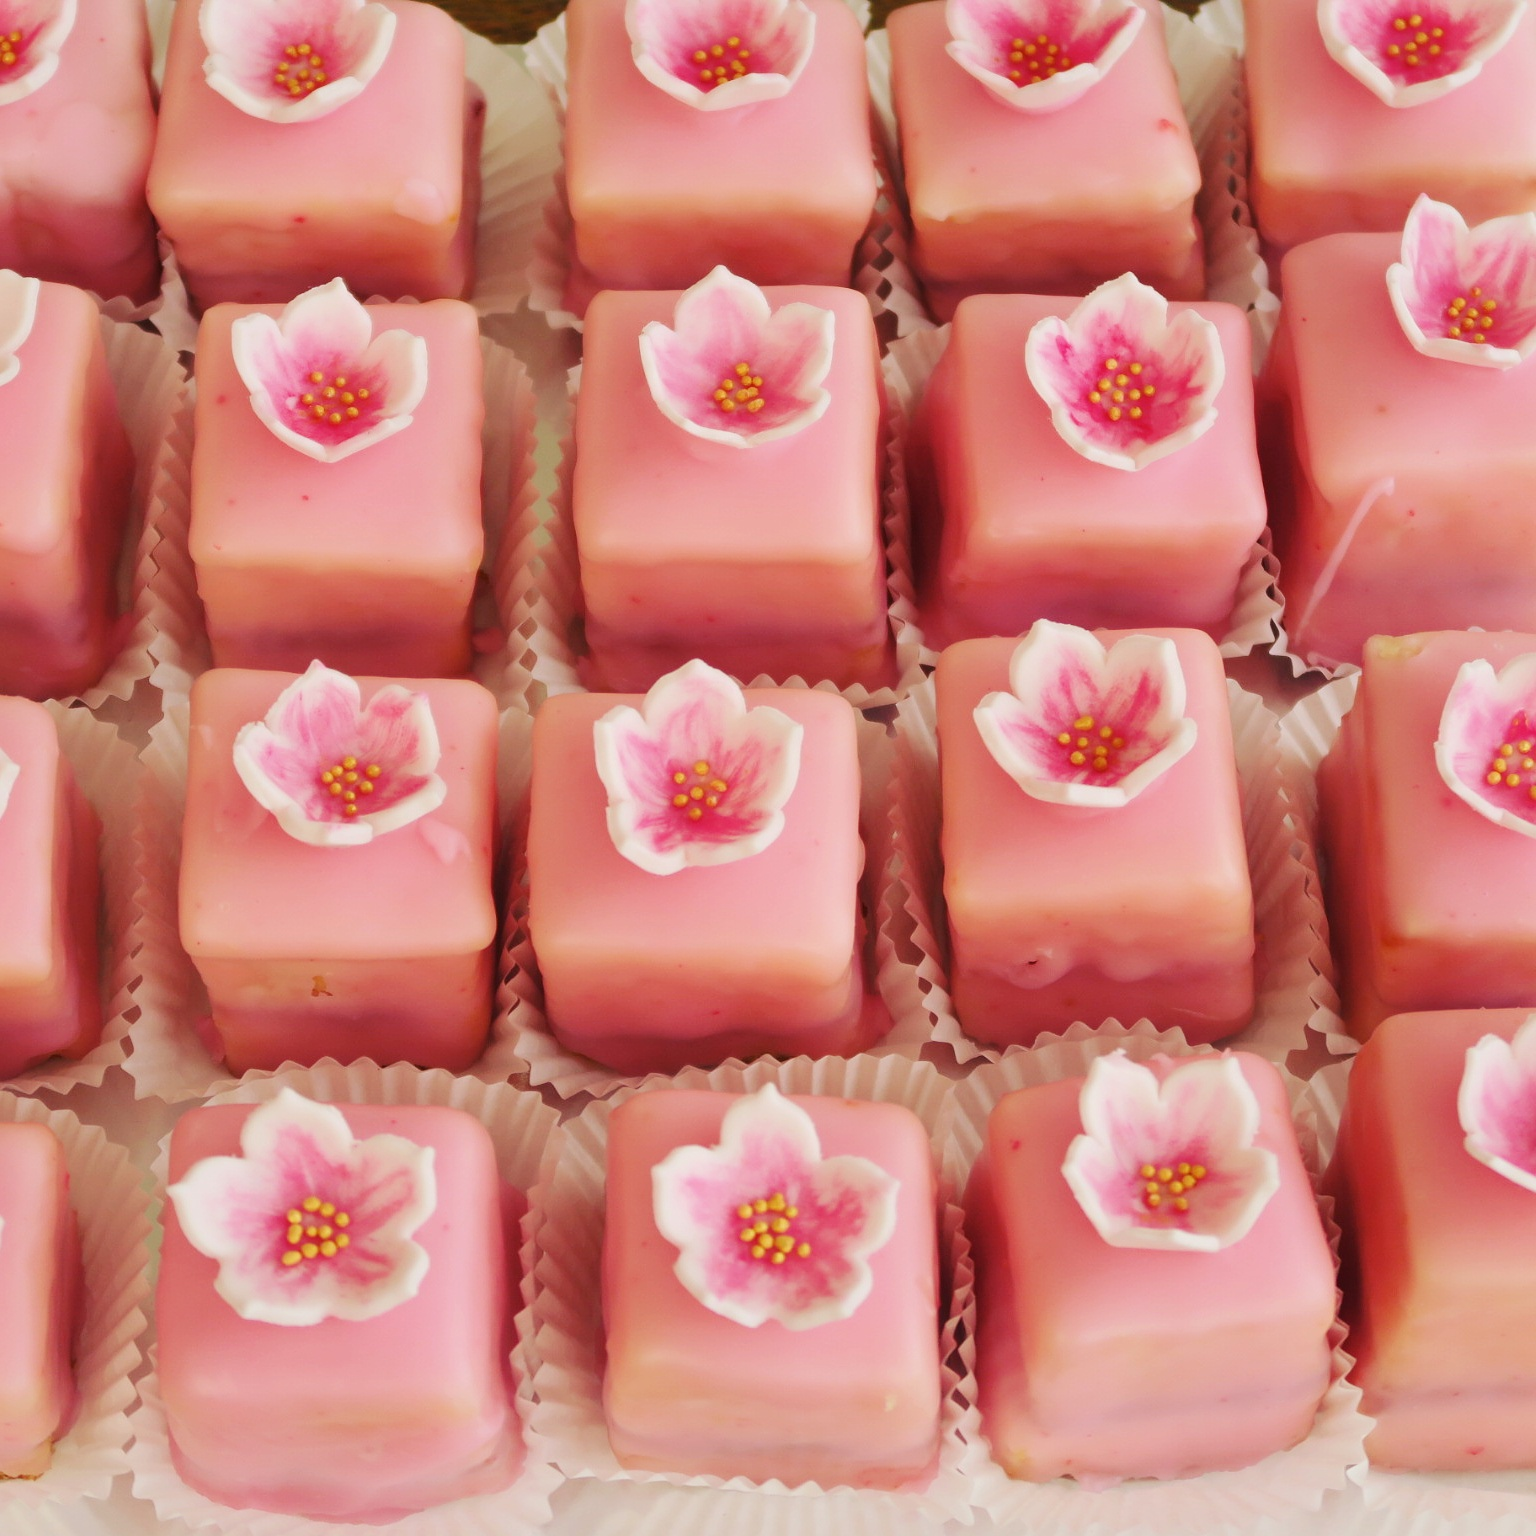 Petit fours with handmade flowers.jpg